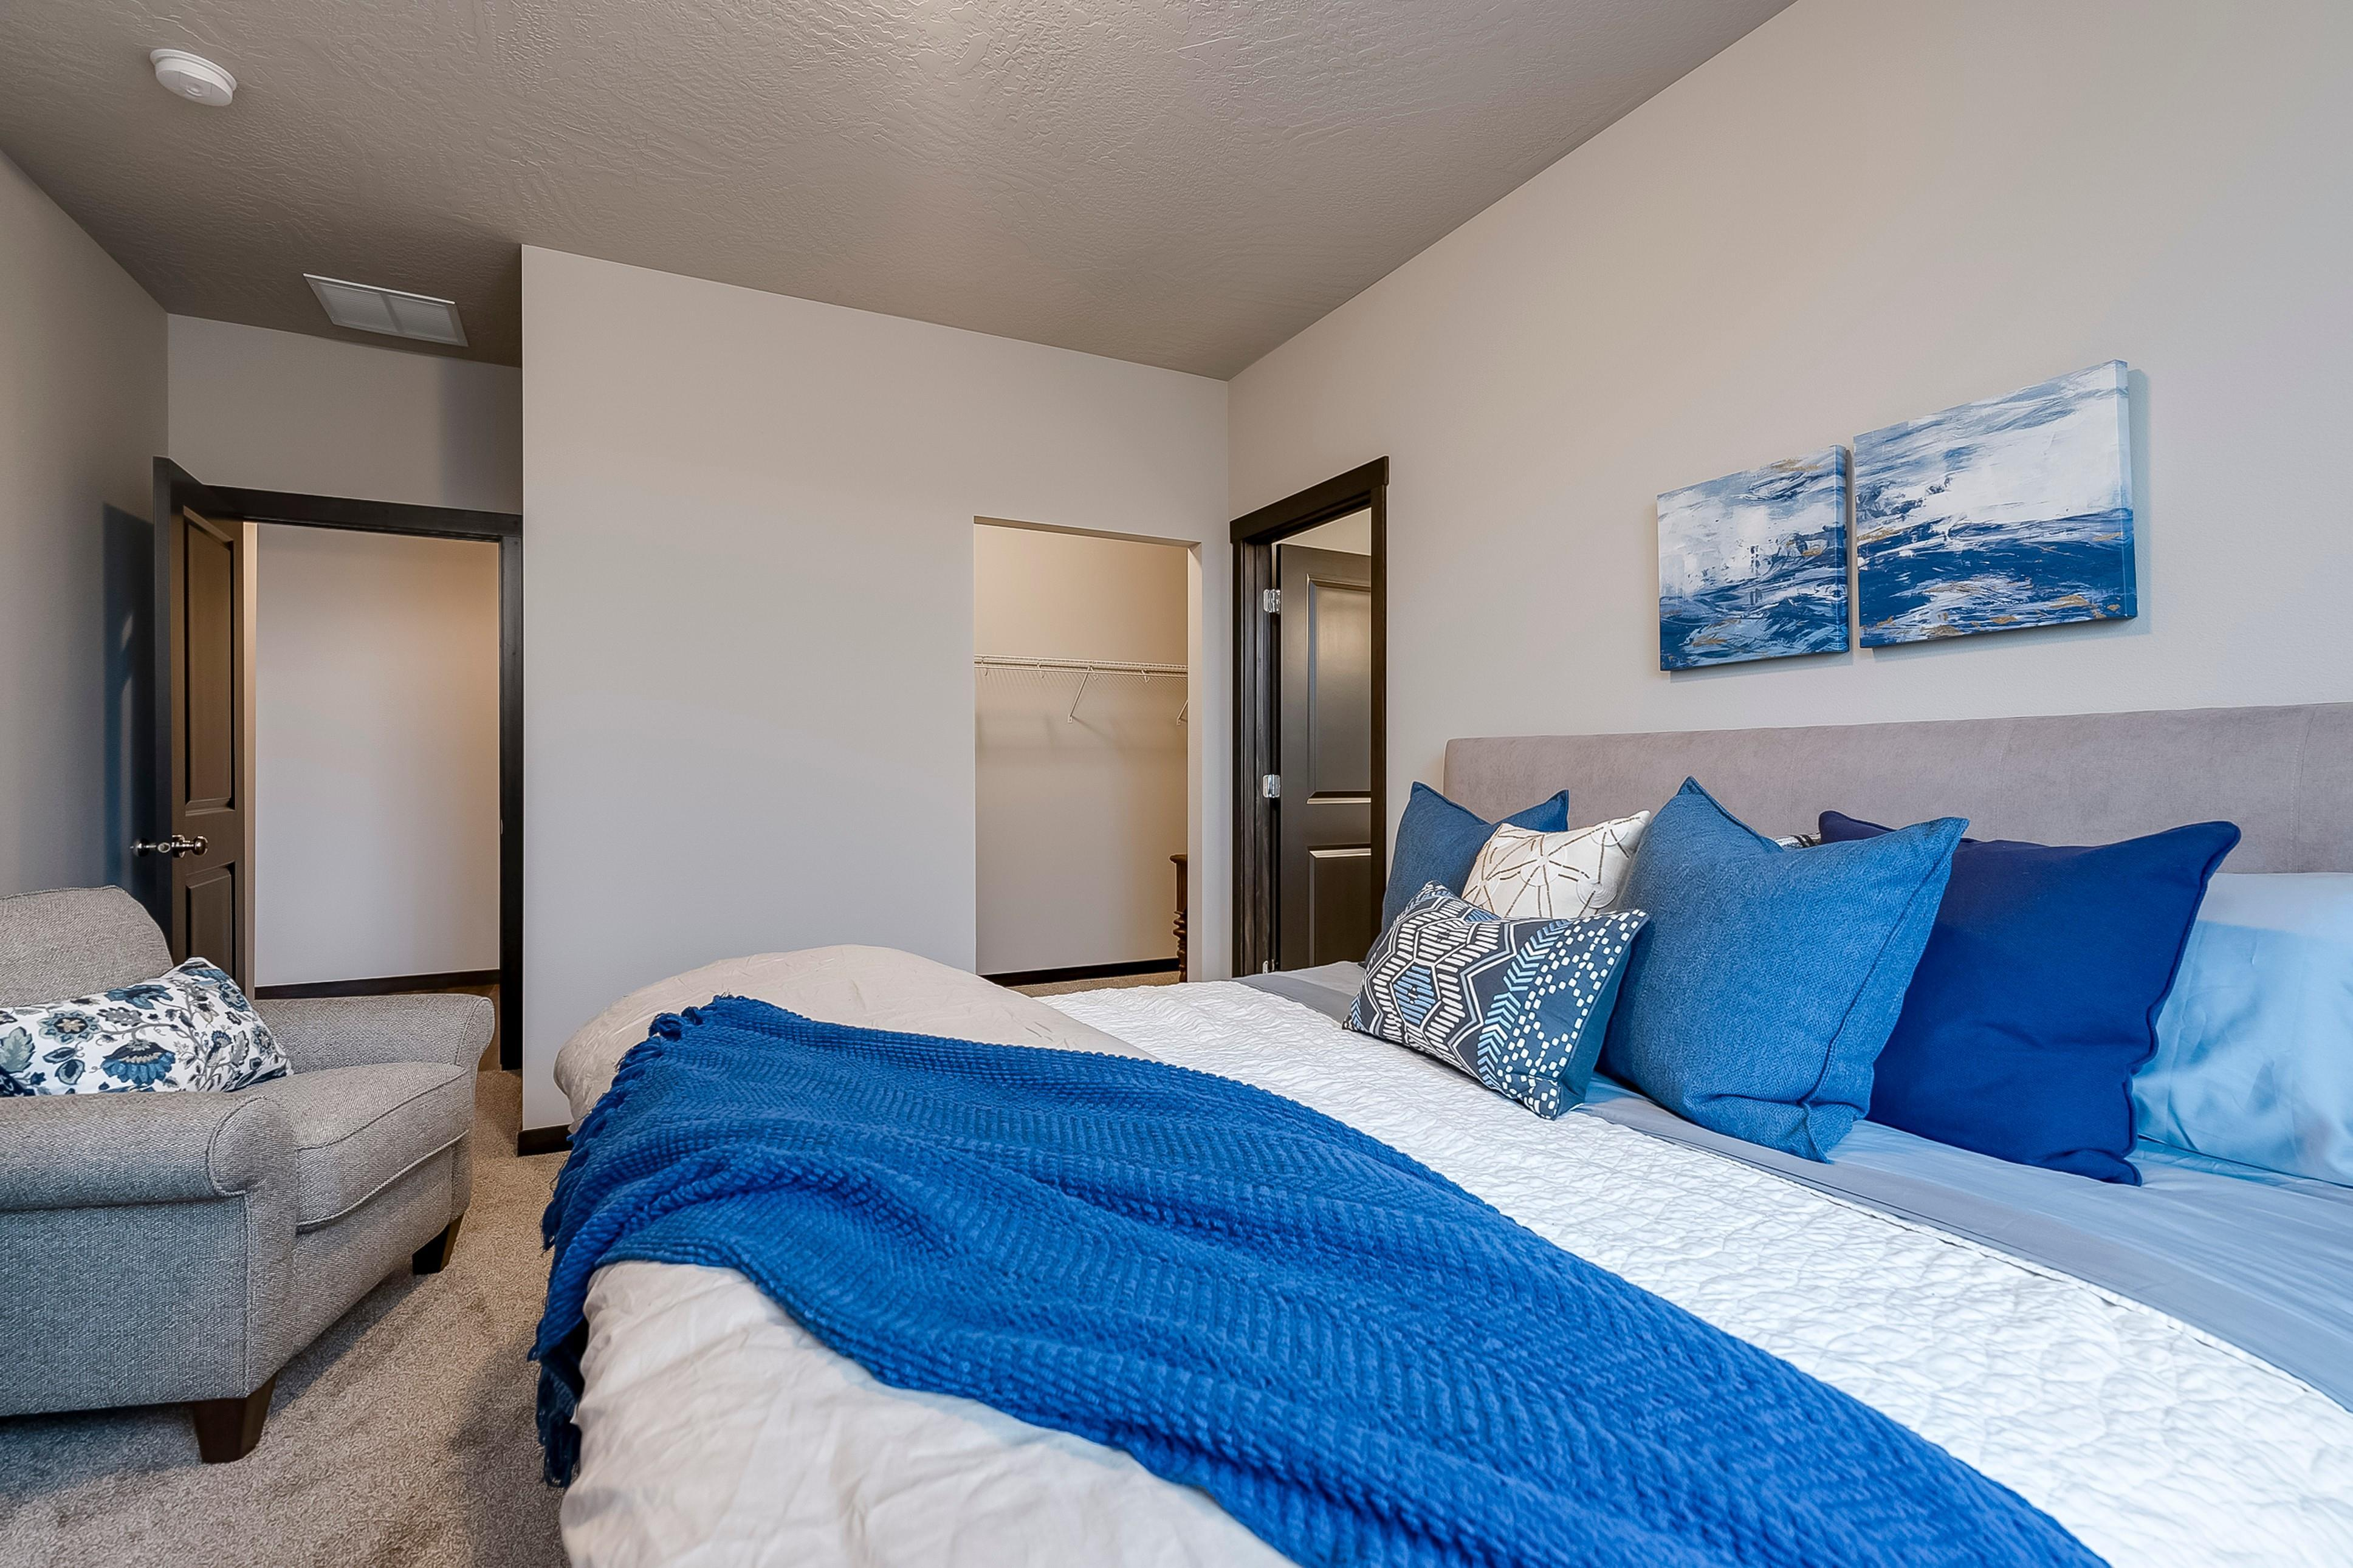 Bedroom featured in the Clearwater By Painted Rock Homes in Spokane-Couer d Alene, ID